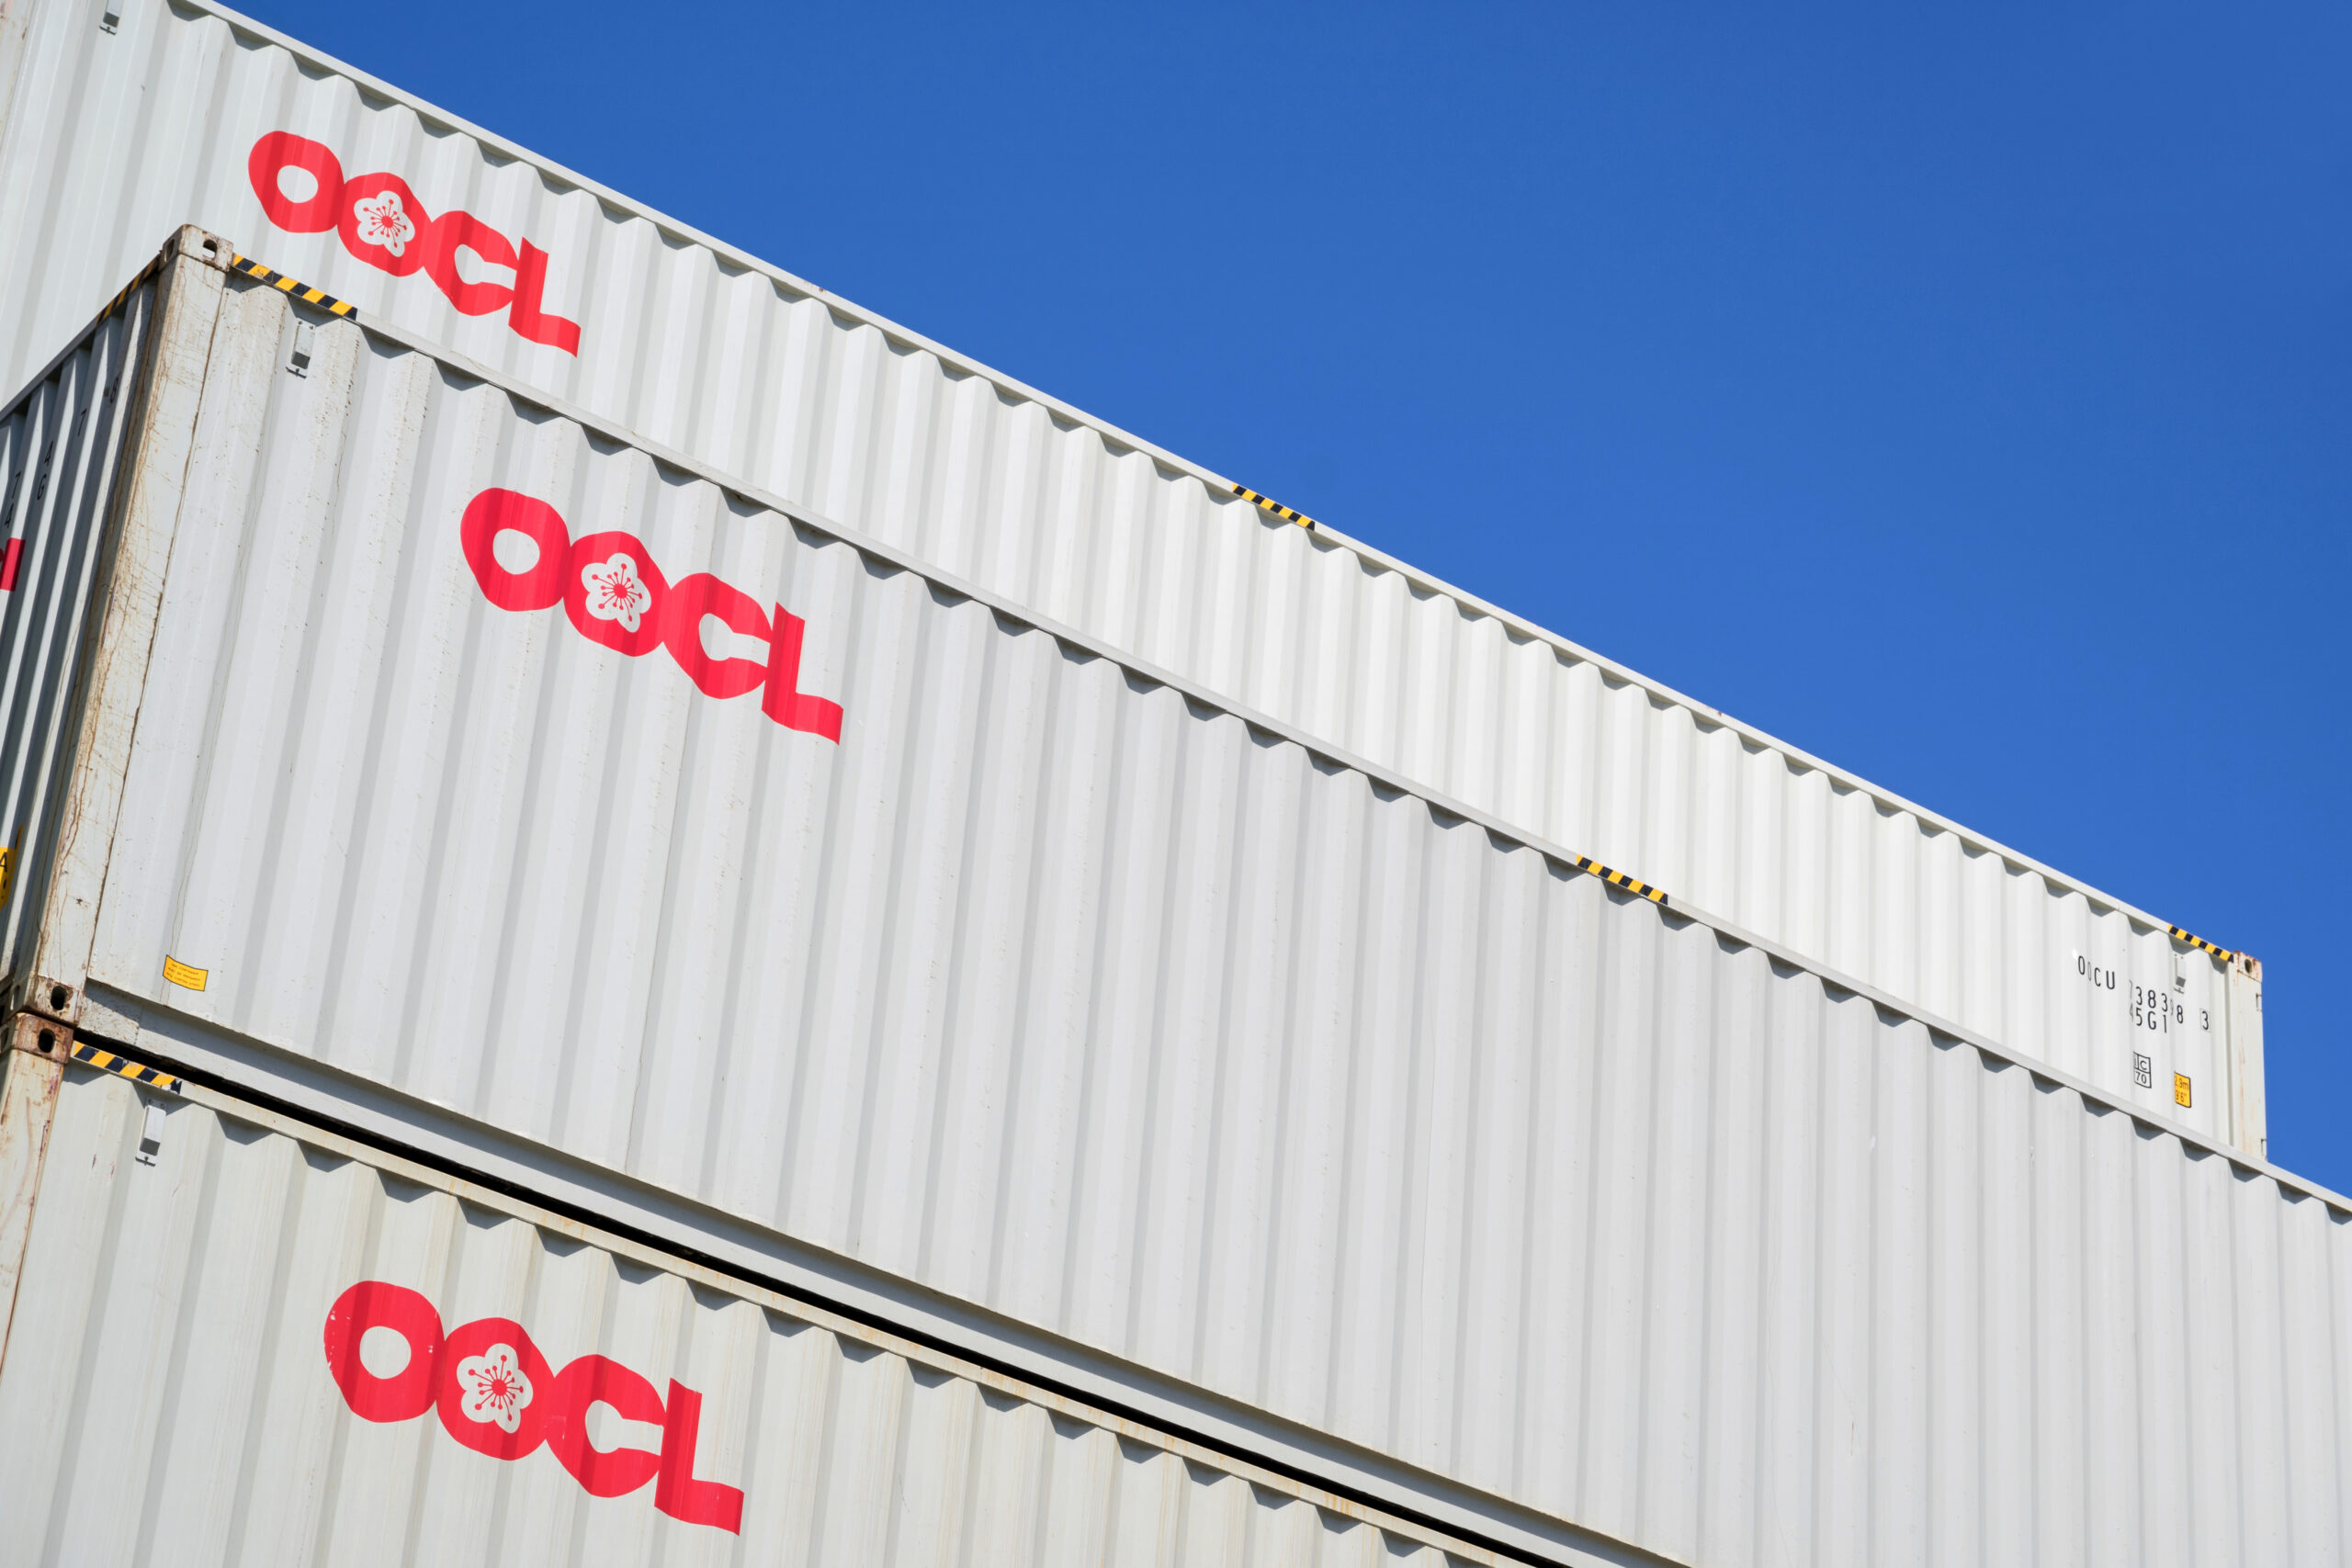 OOCL reports rising revenues with 16.3% 1